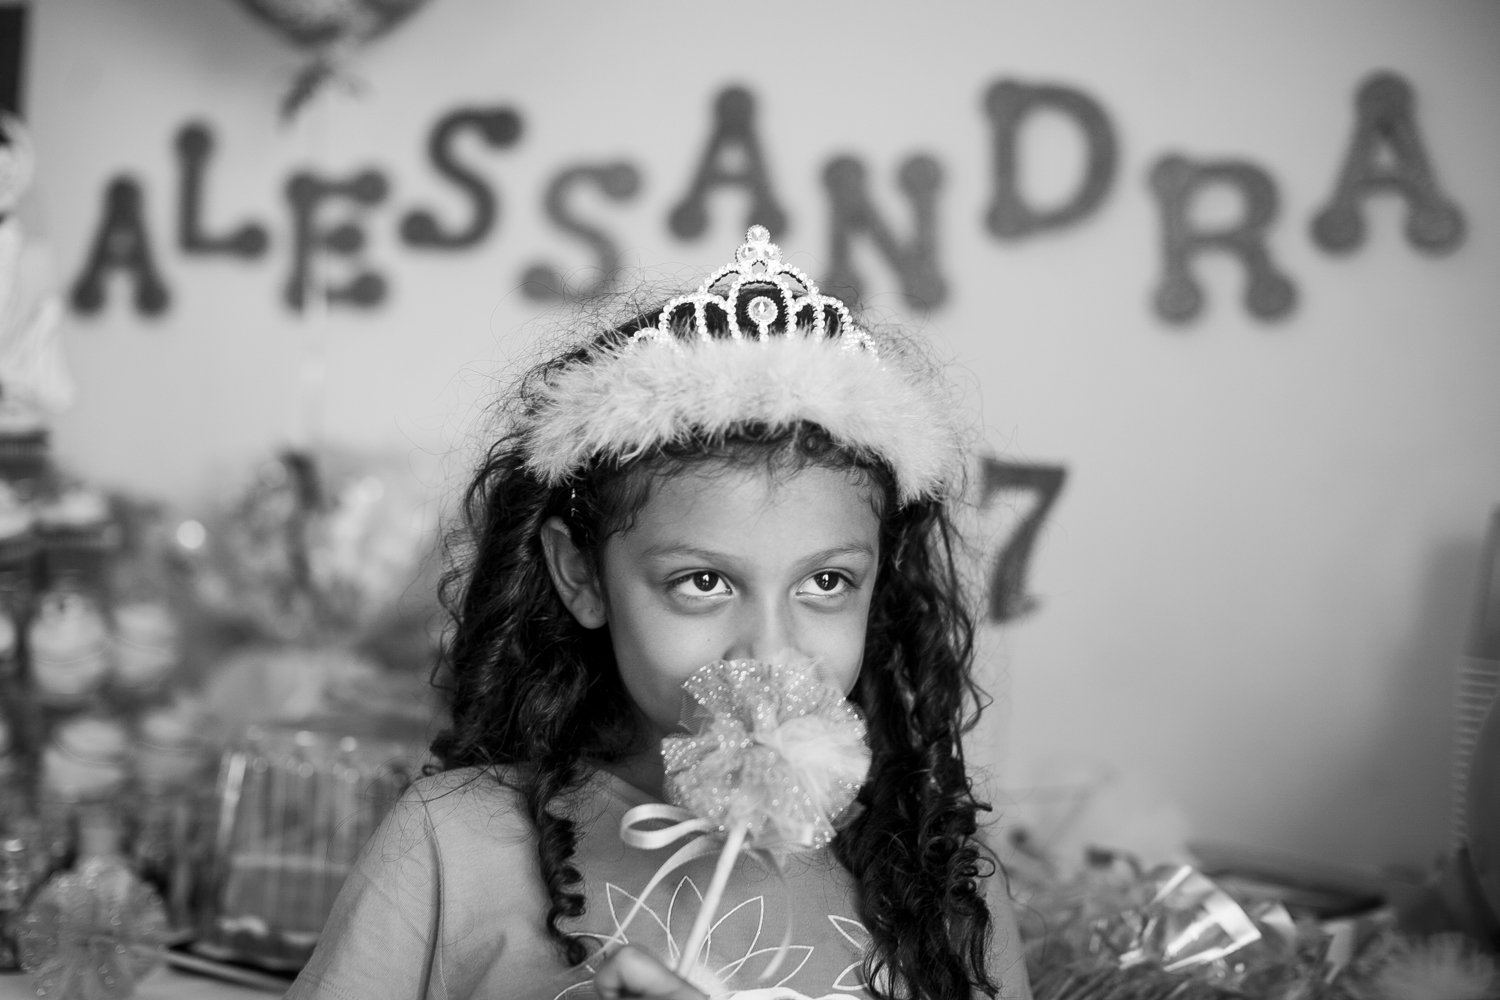 Alessandra 7th Birthday Party © Julysa Sosa